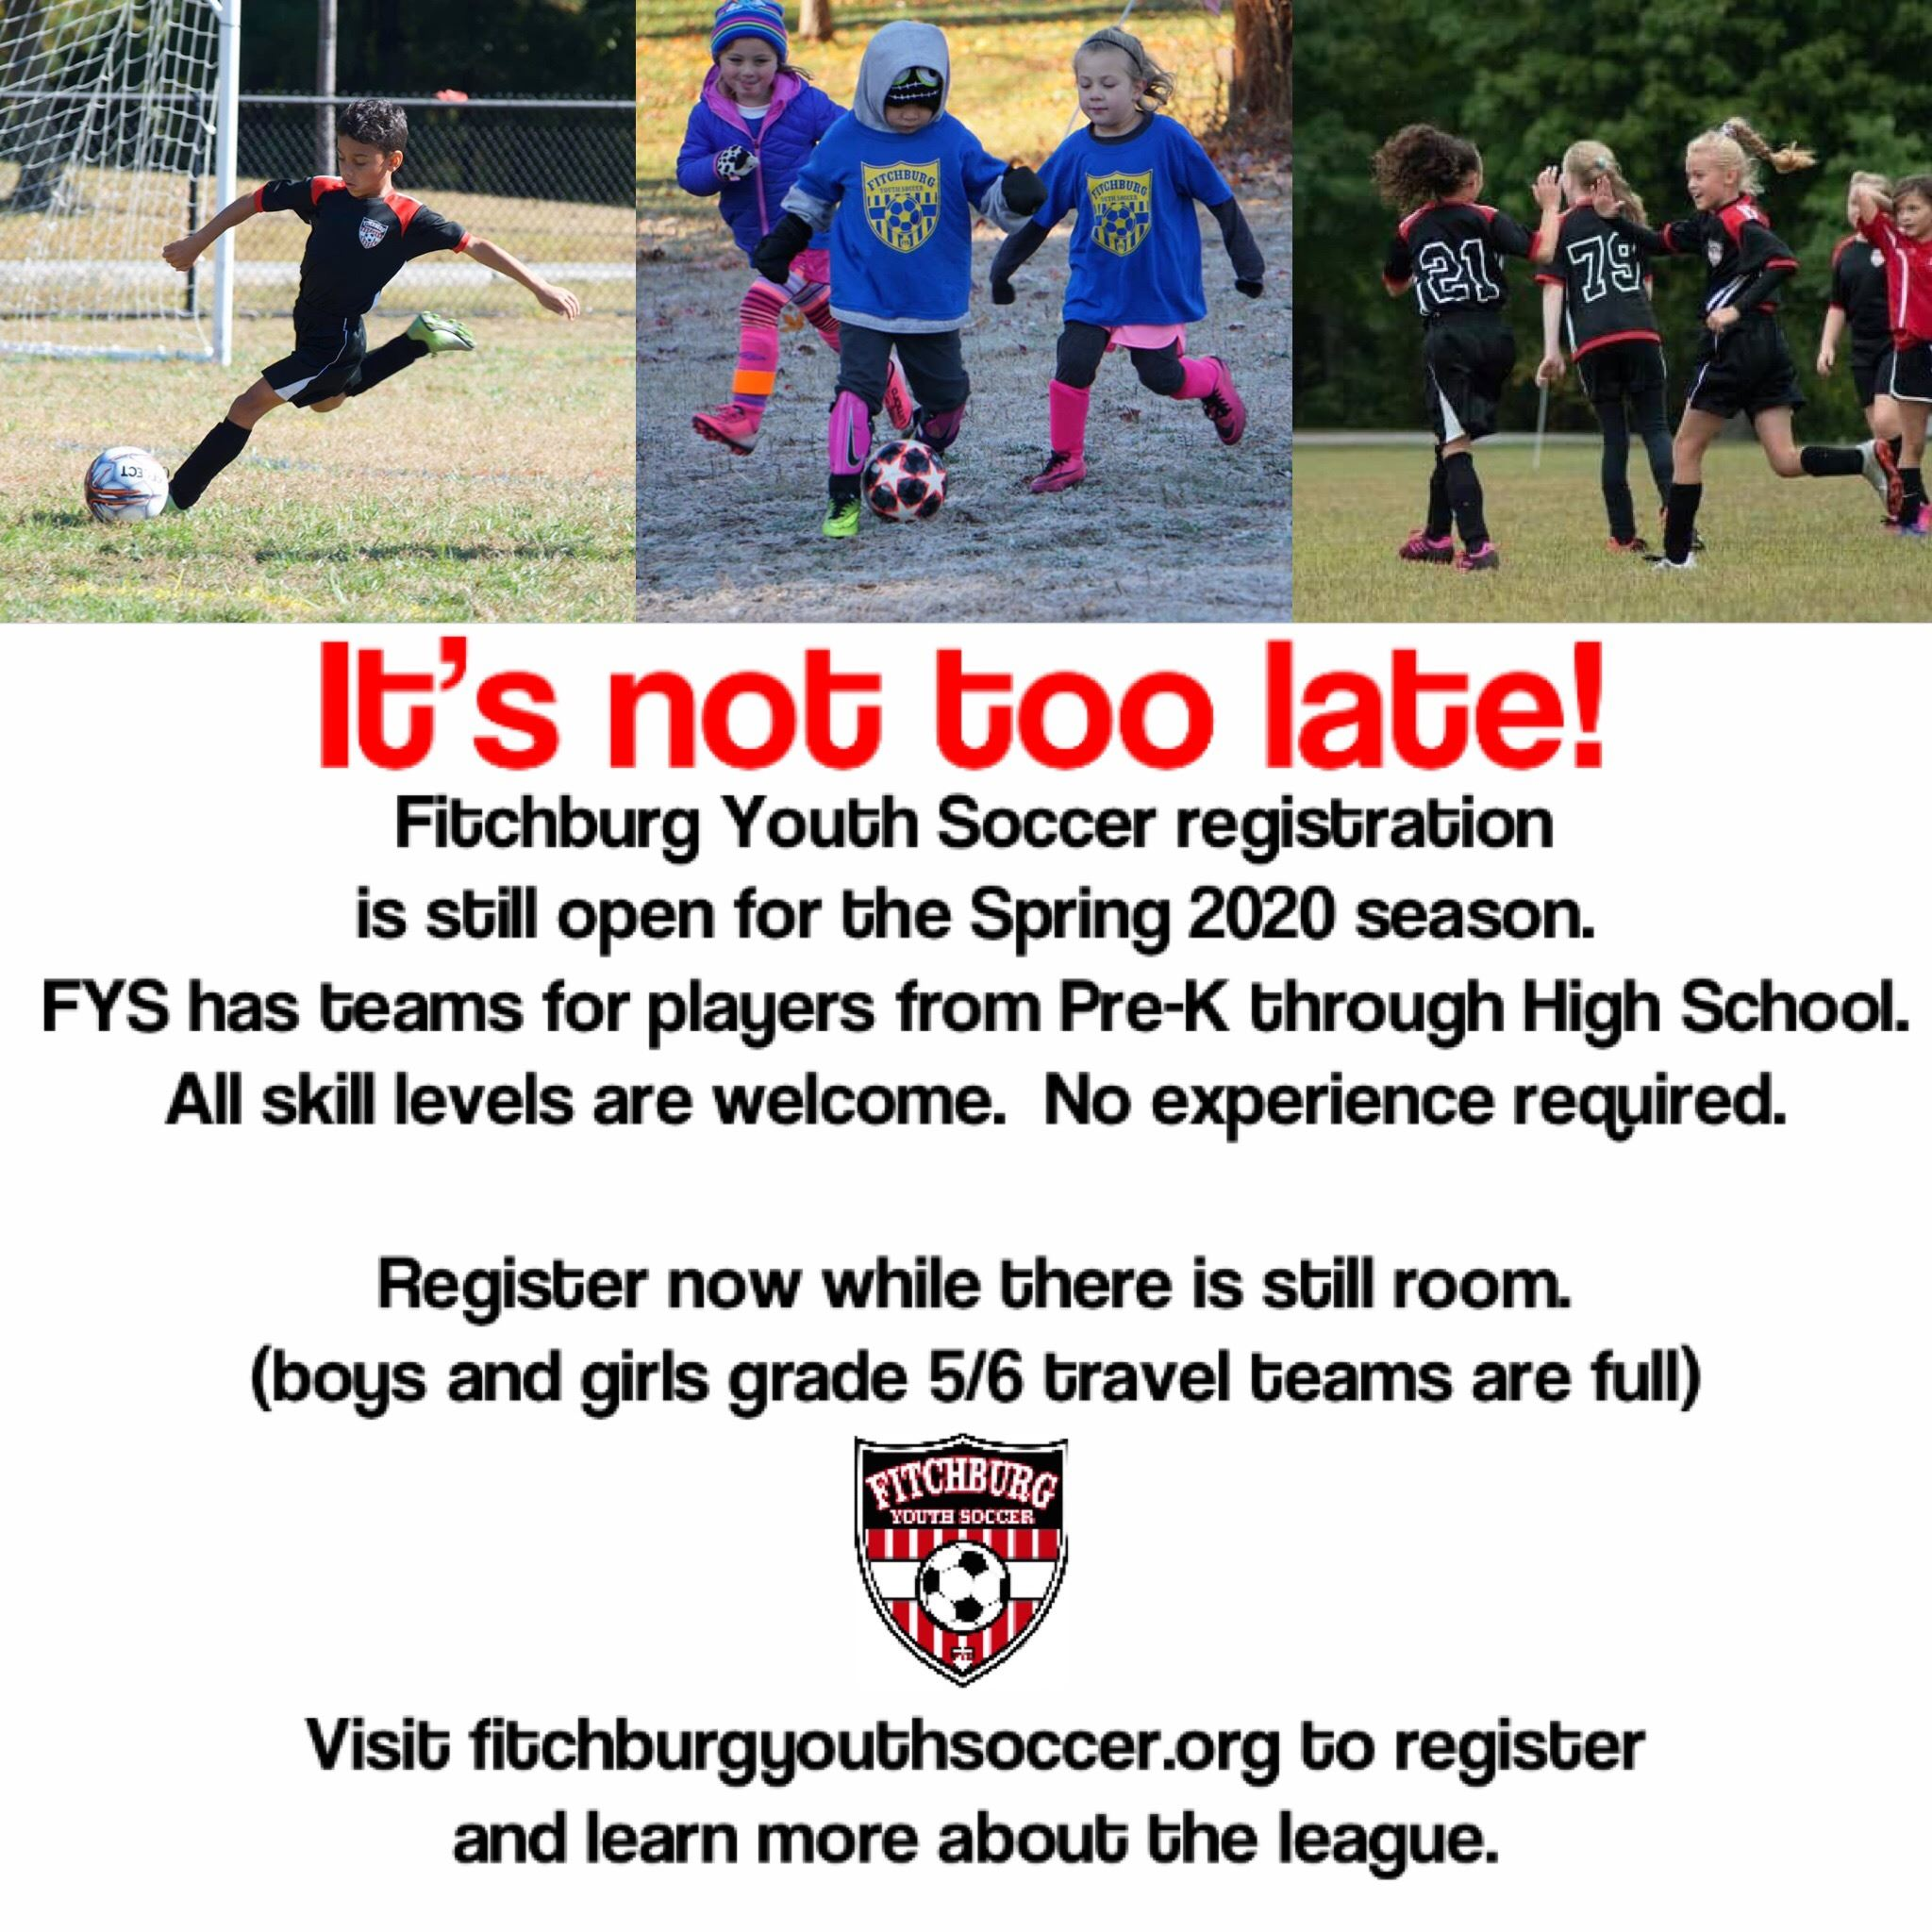 Registration is still available for Fitchburg Youth Soccer. Register at www.fitchburgyouthsoccer.org